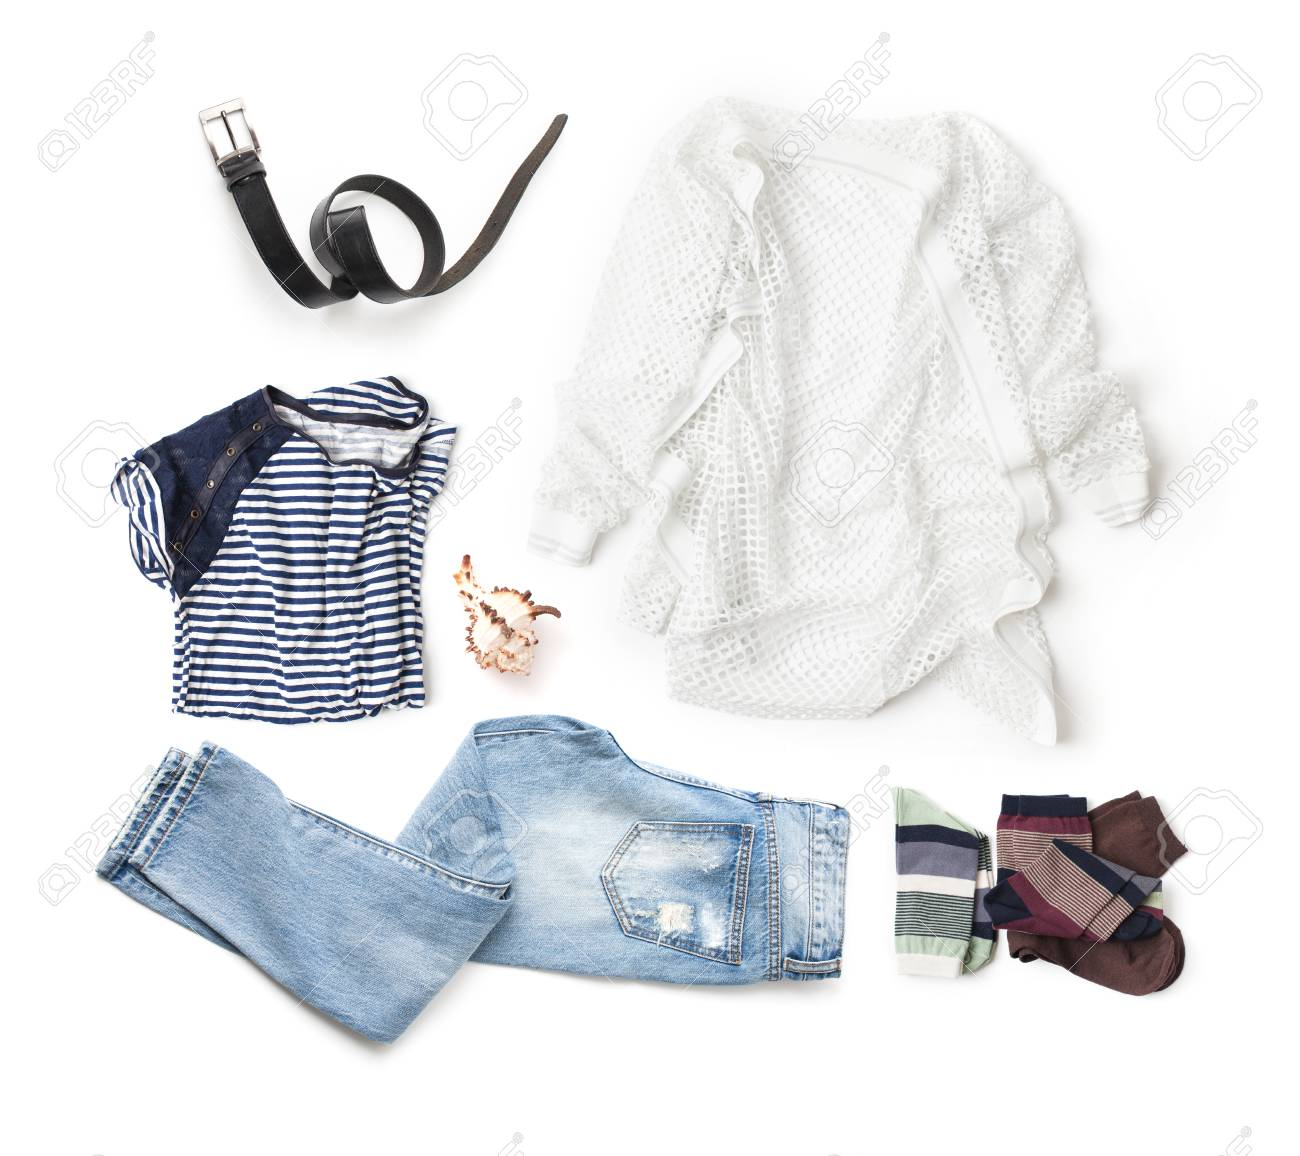 07094344e5d A set of clothes on a white background. Isolated. Stock Photo - 87760951